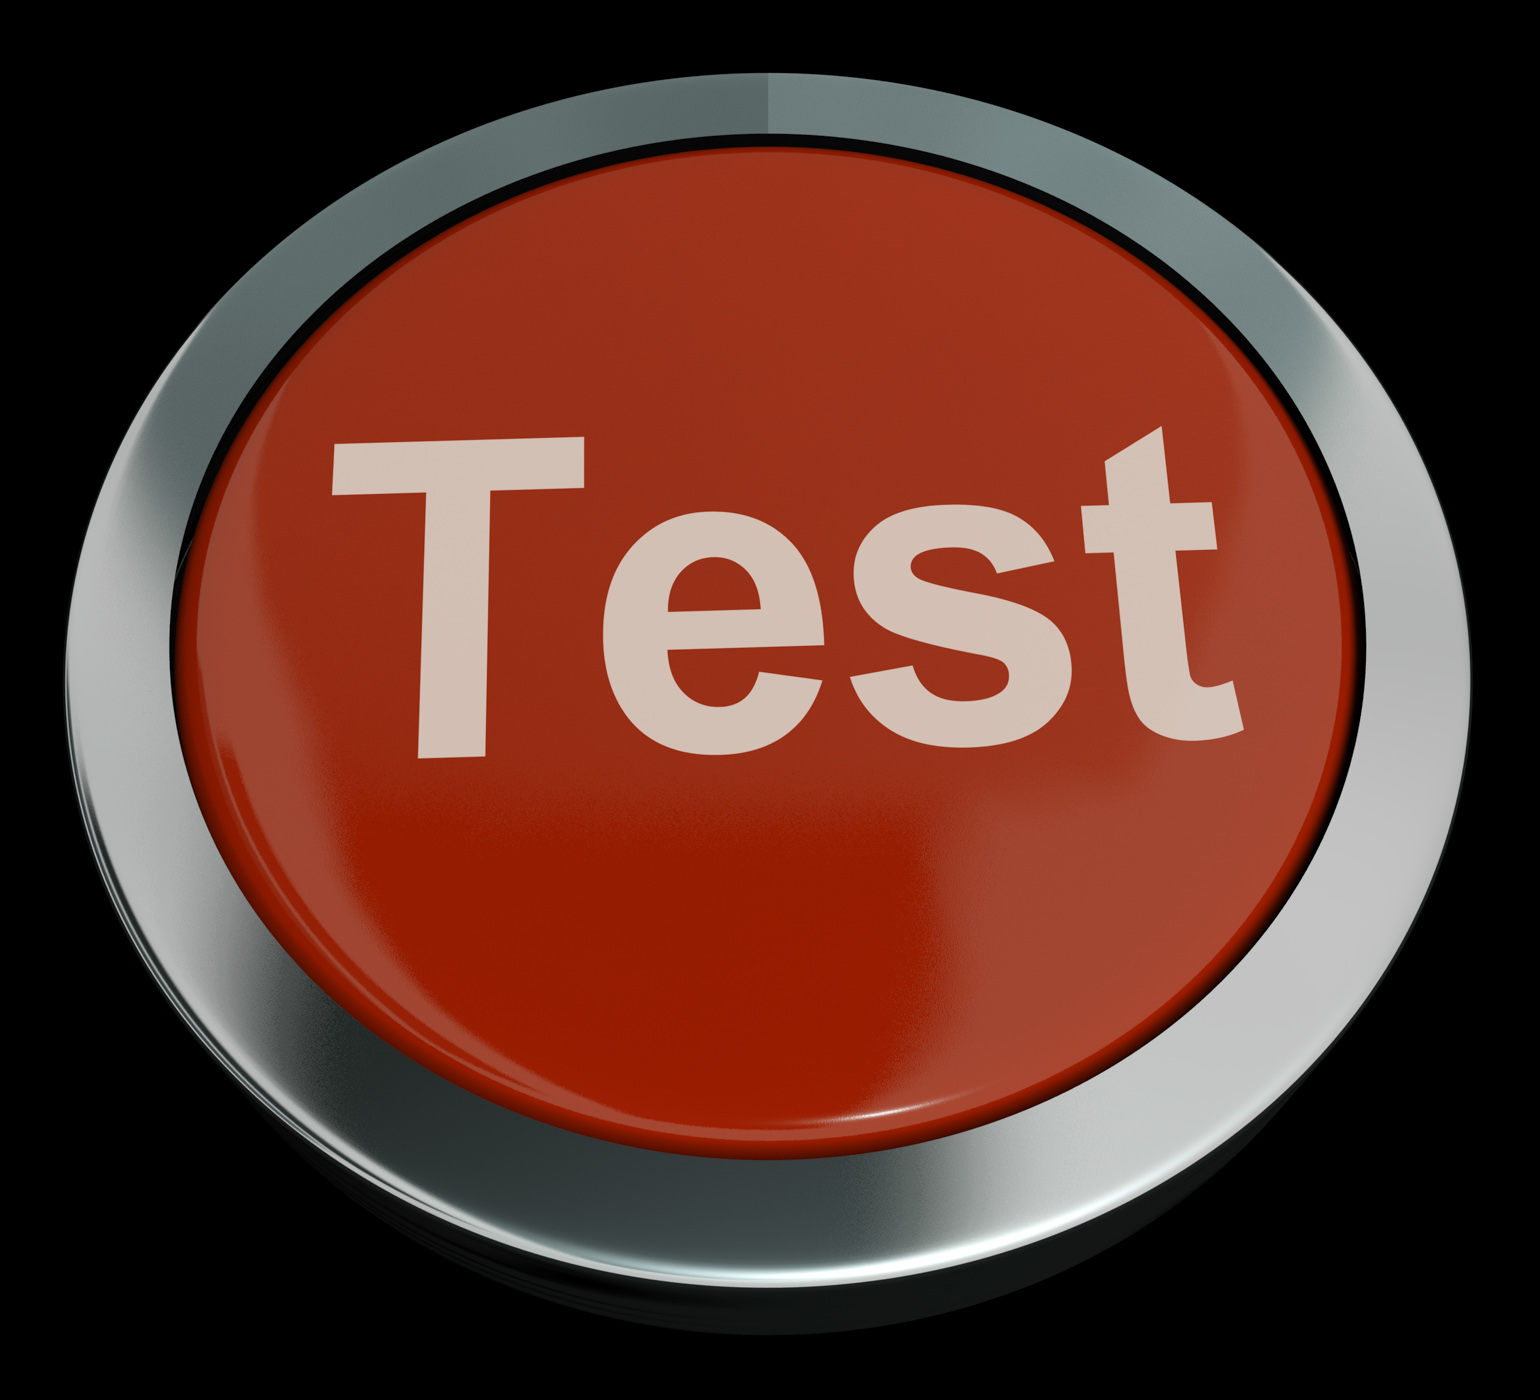 Test Button In Red Showing Quiz Or Online Questionnaire, Application, Button, Challenge, Exam, HQ Photo